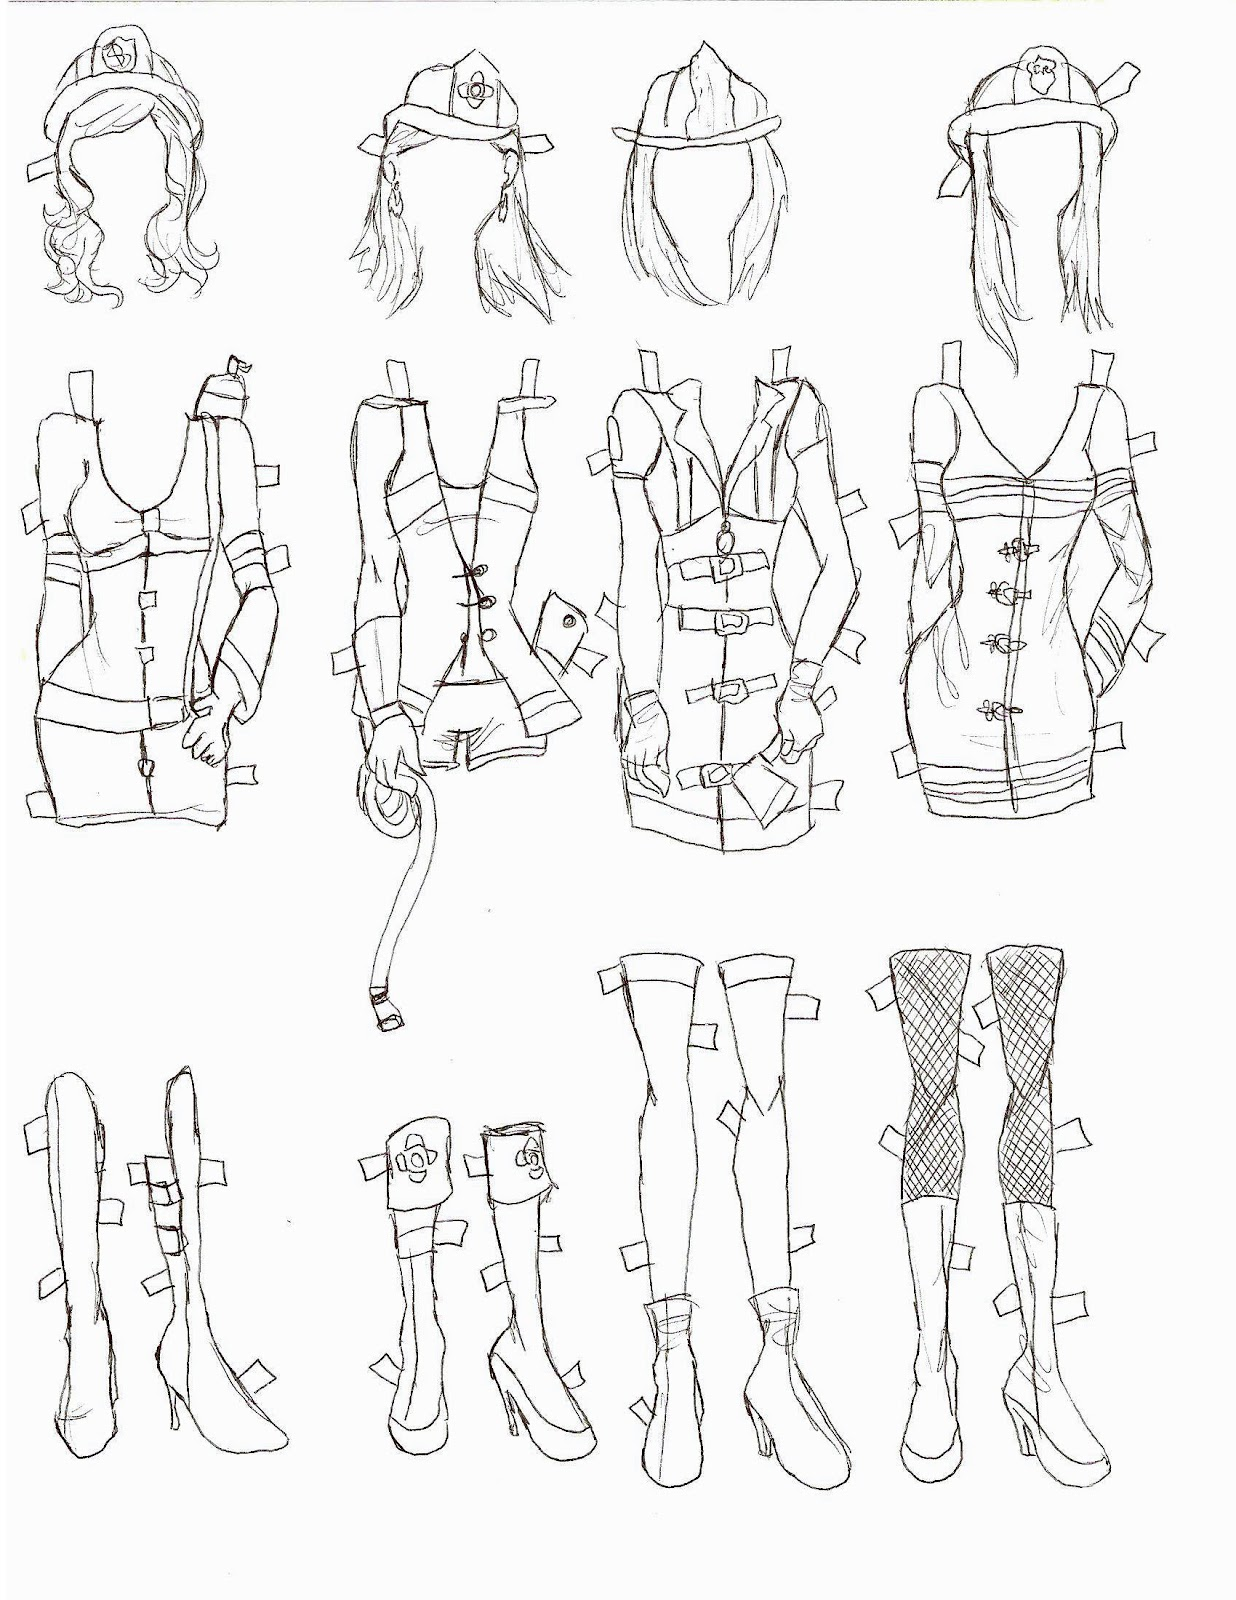 How To Draw Underwear The Doll Has Short Hair, Flats, And Bat Print  Underwear